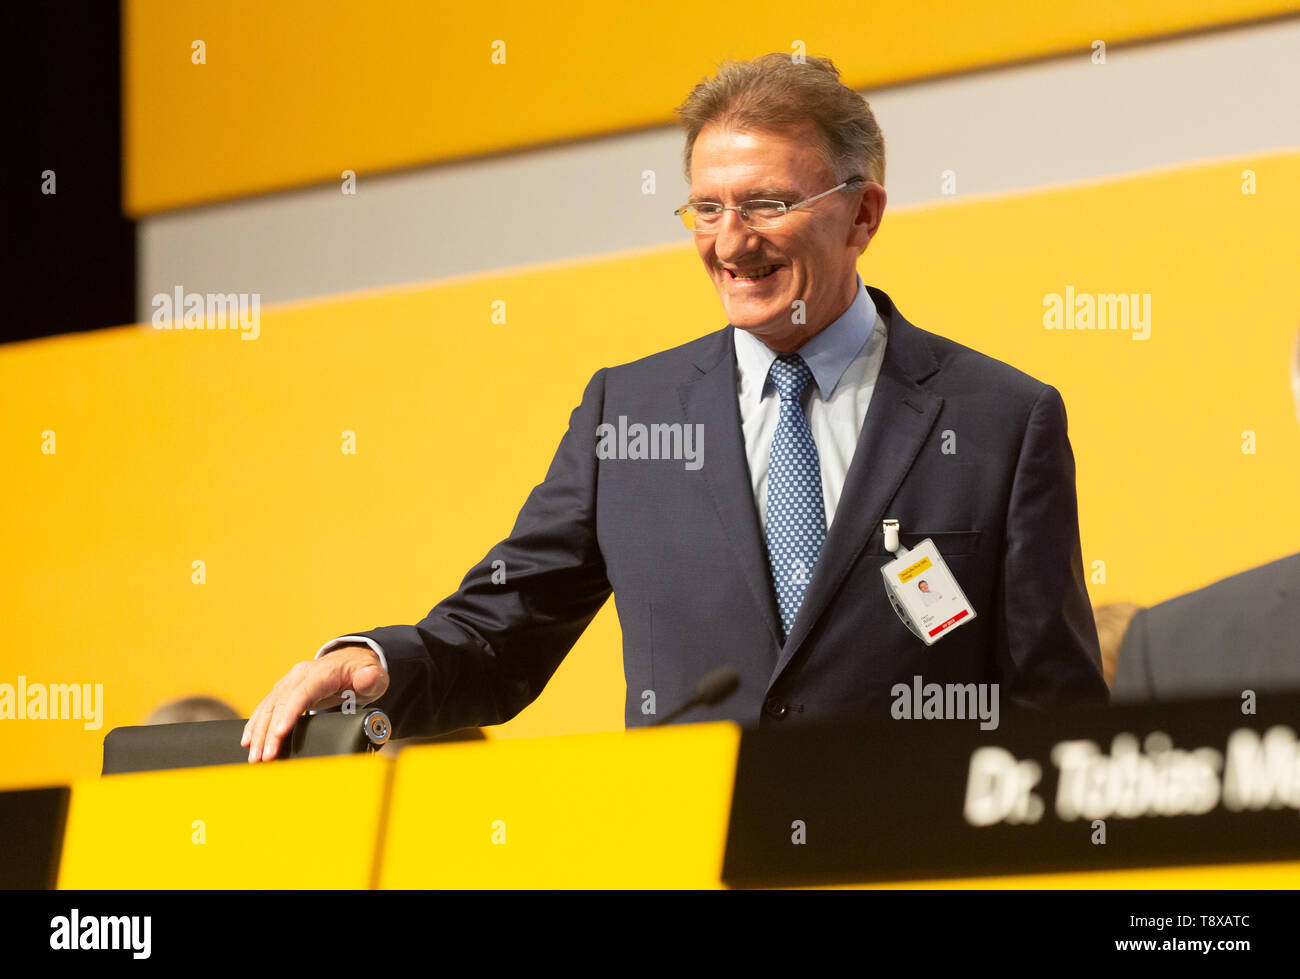 Bonn, Deutschland. 15th May, 2019. Germany, Bonn, May 5 2019, Deutsche Post DHL Annual General Meeting: Member of the executive board Ken Allen. Credit: Juergen Schwarz/Alamy Live News - Stock Image